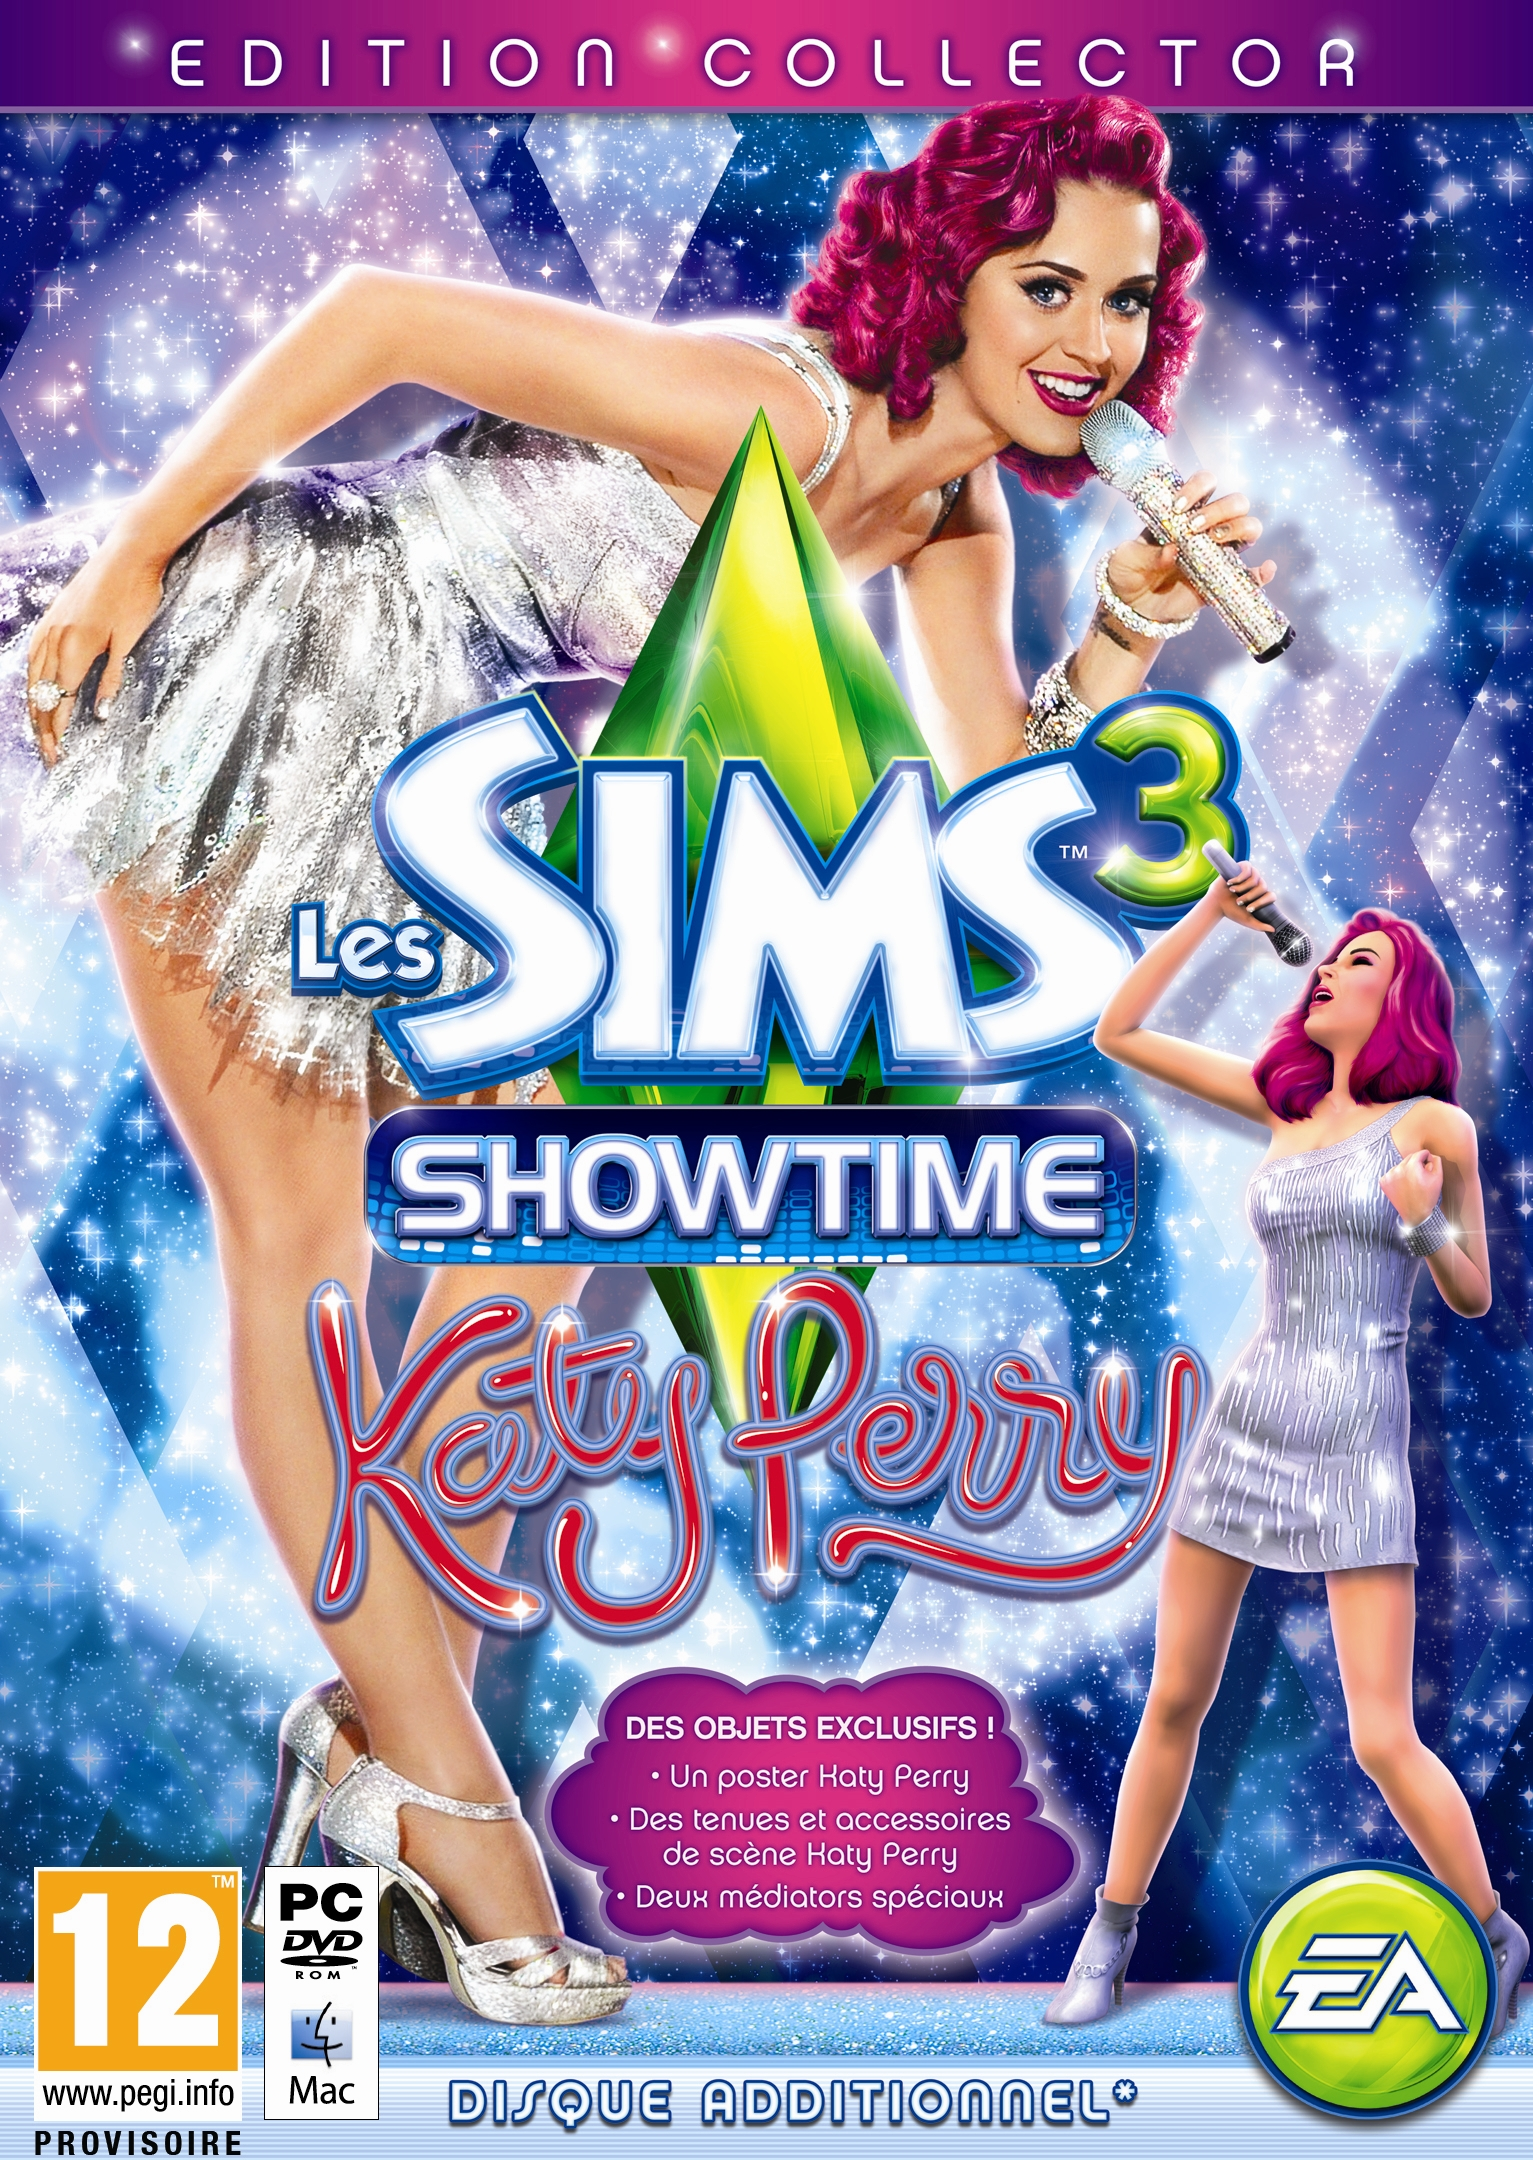 Les Sims 3: Showtime Edition Collector Katy Perry